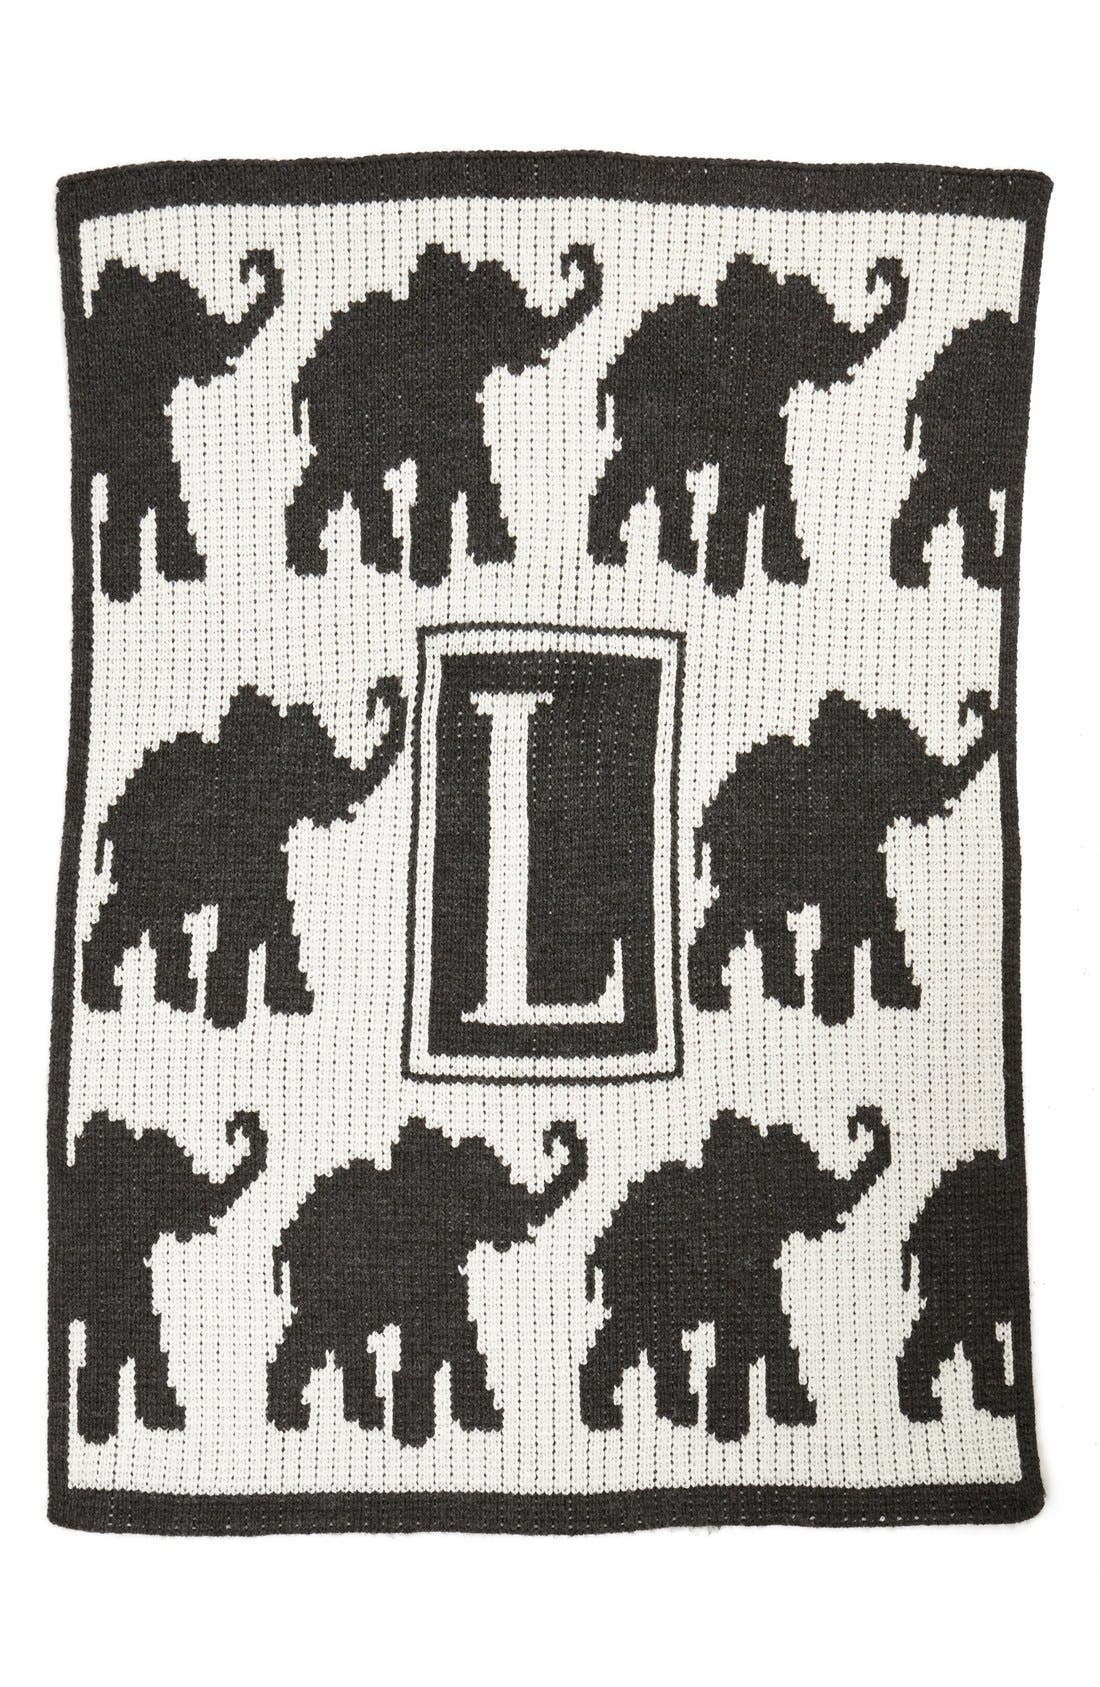 Butterscotch Blankees 'Walking Elephants' Personalized Crib Blanket